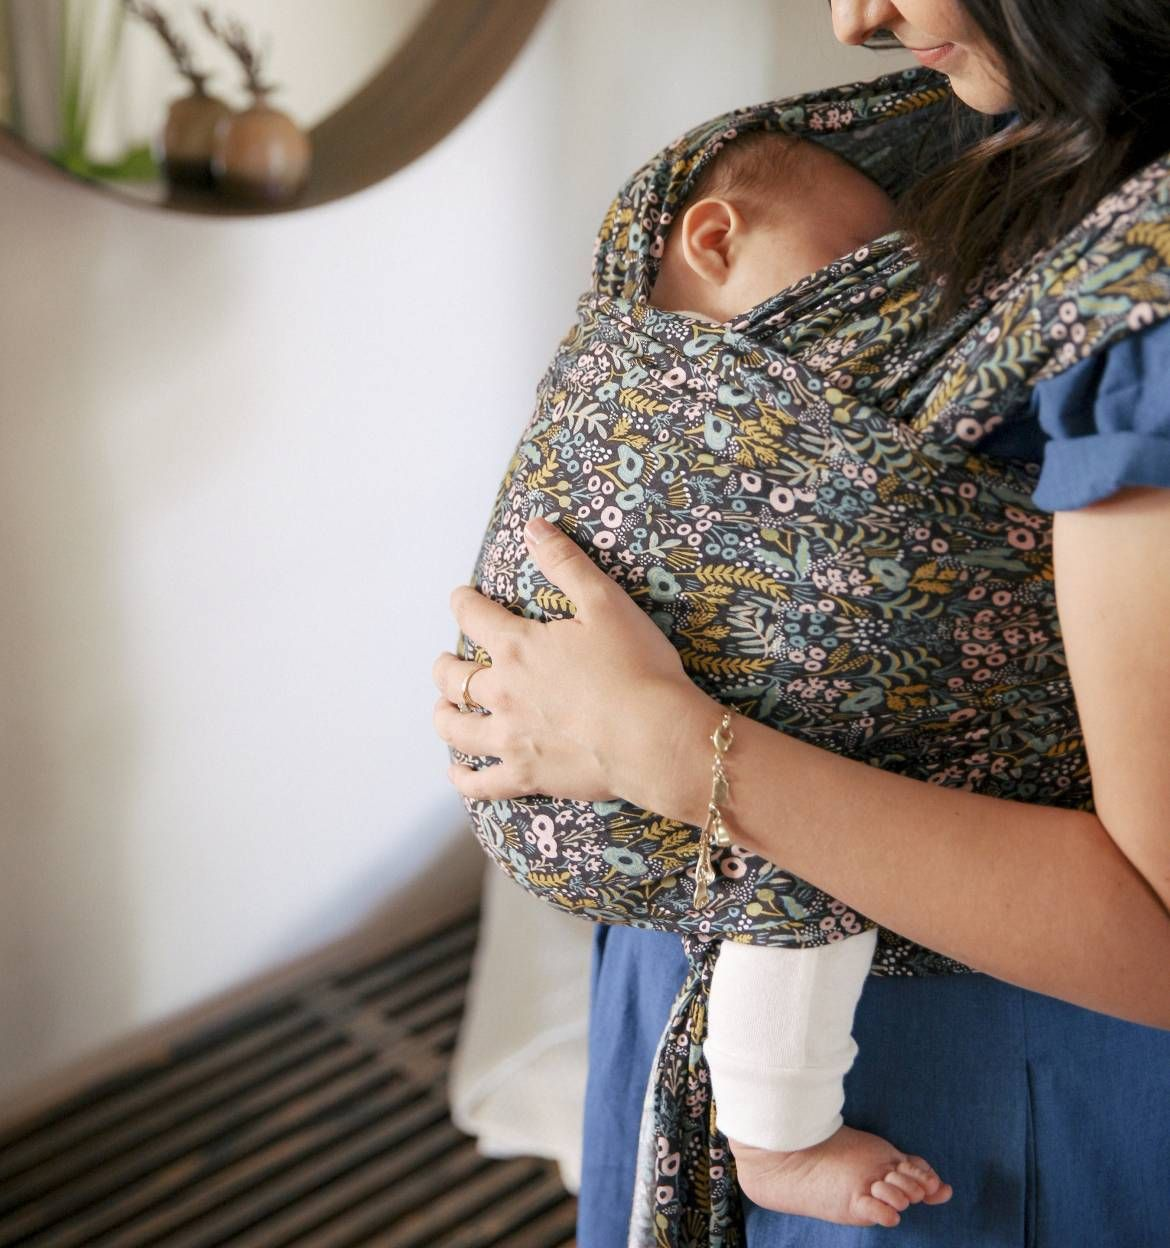 aca2dc3d230 Solly Baby Wrap Baby Carrier by Rifle Paper Co.